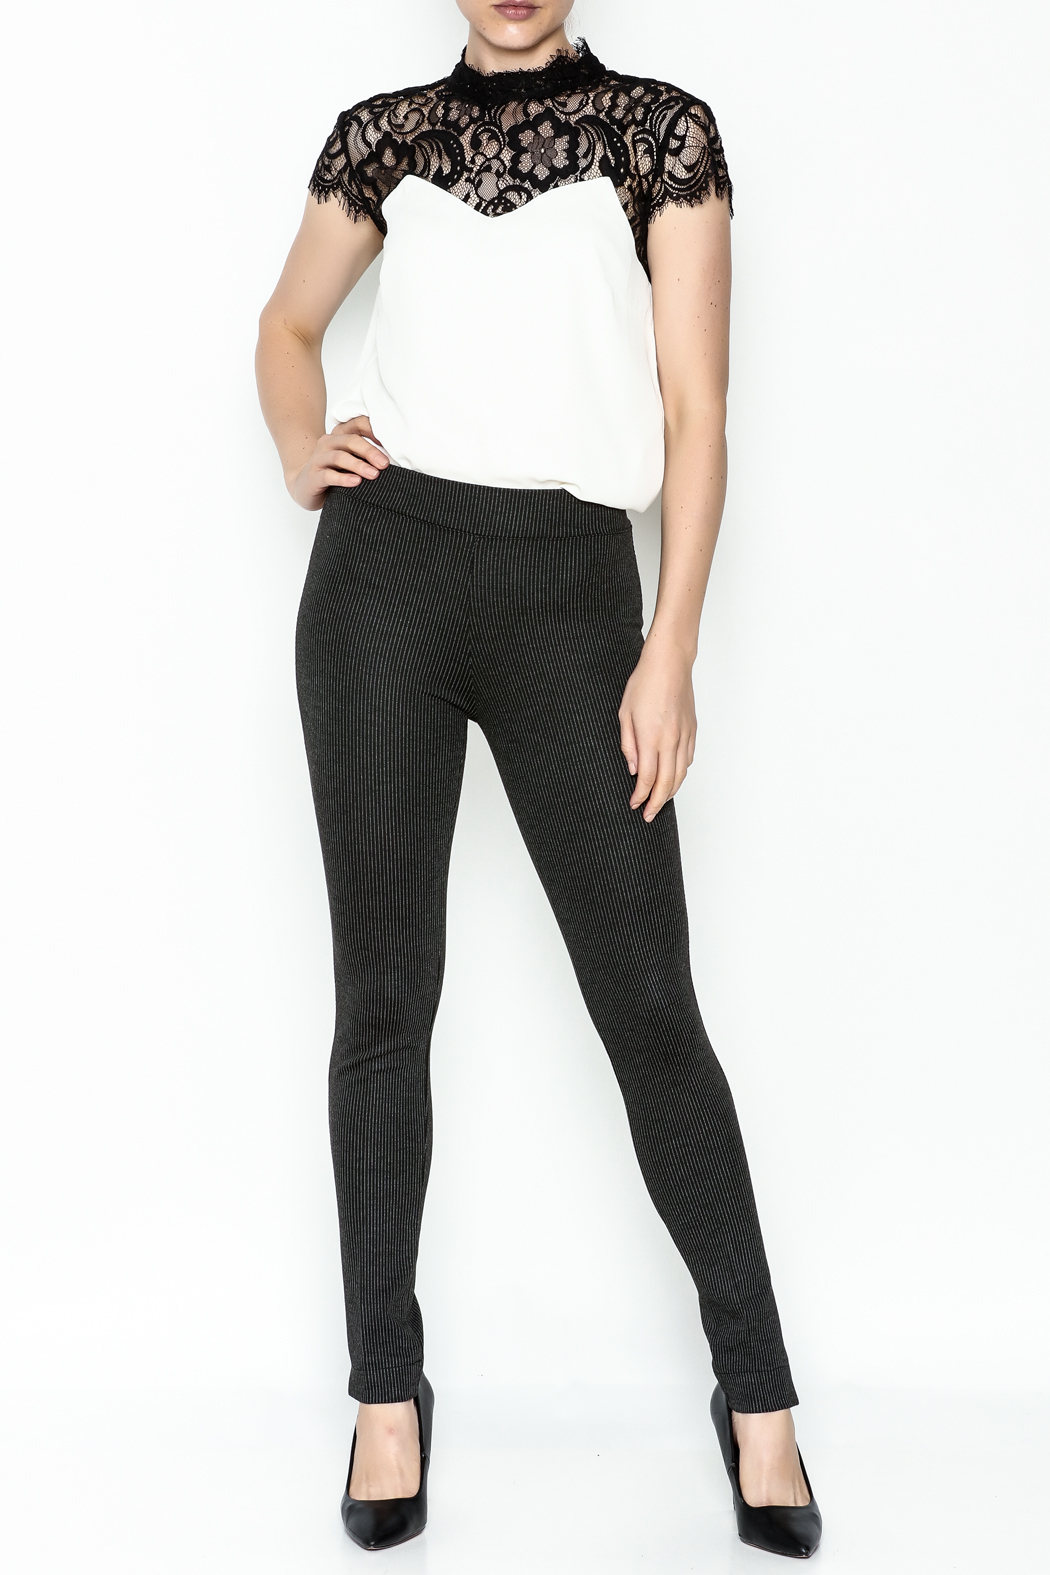 M made in Italy Stripped Legging Pant - Side Cropped Image